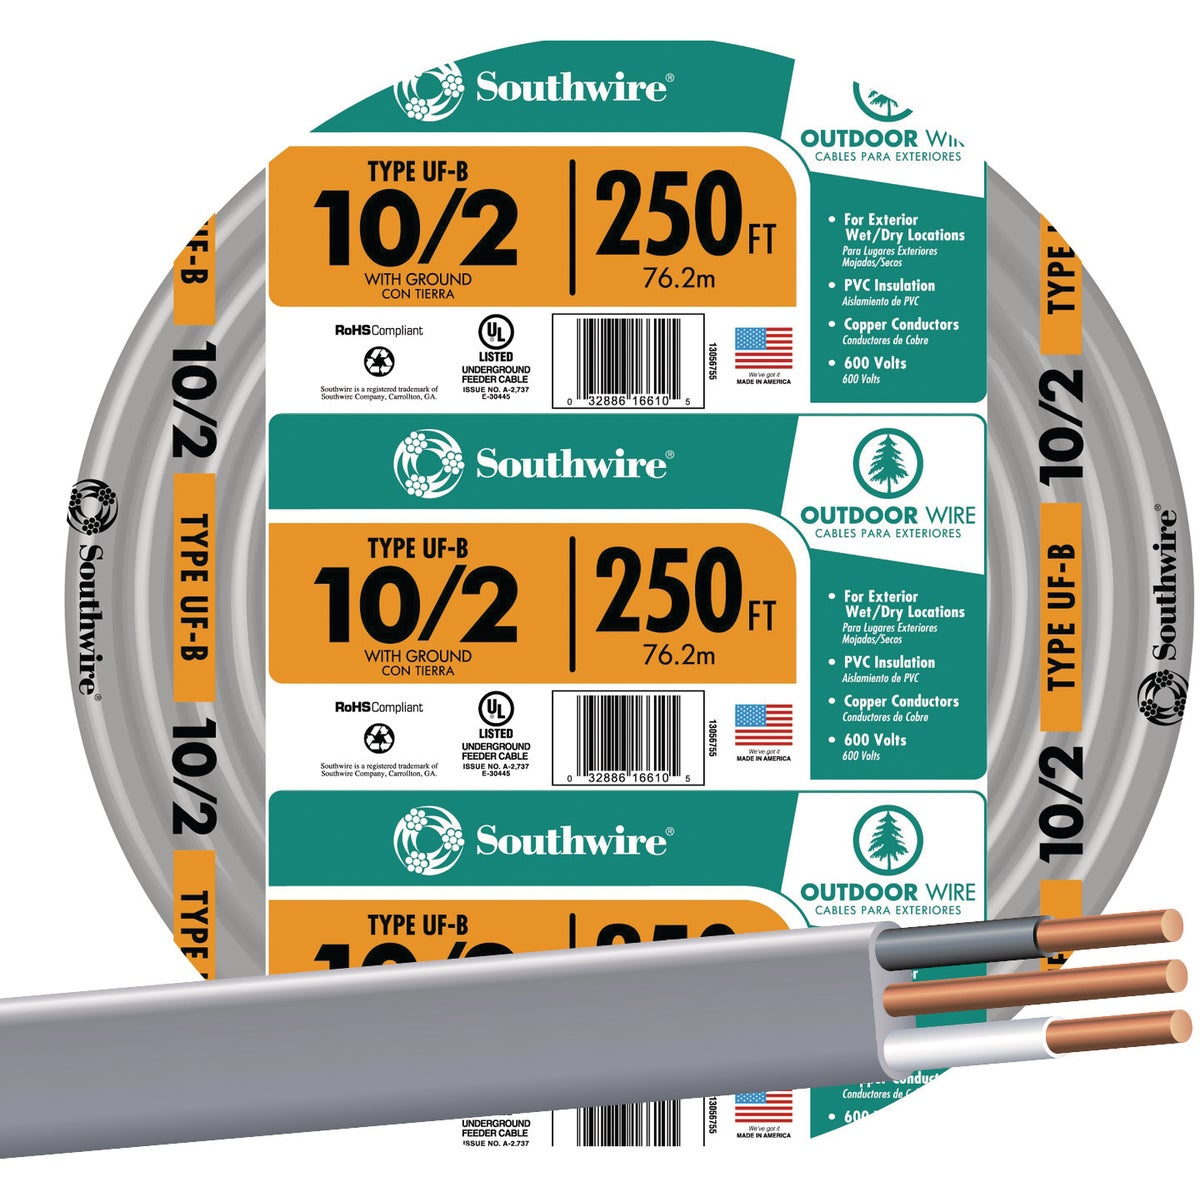 250' 10-2 UFW/G WIRE - 13056755 by Southwire Company